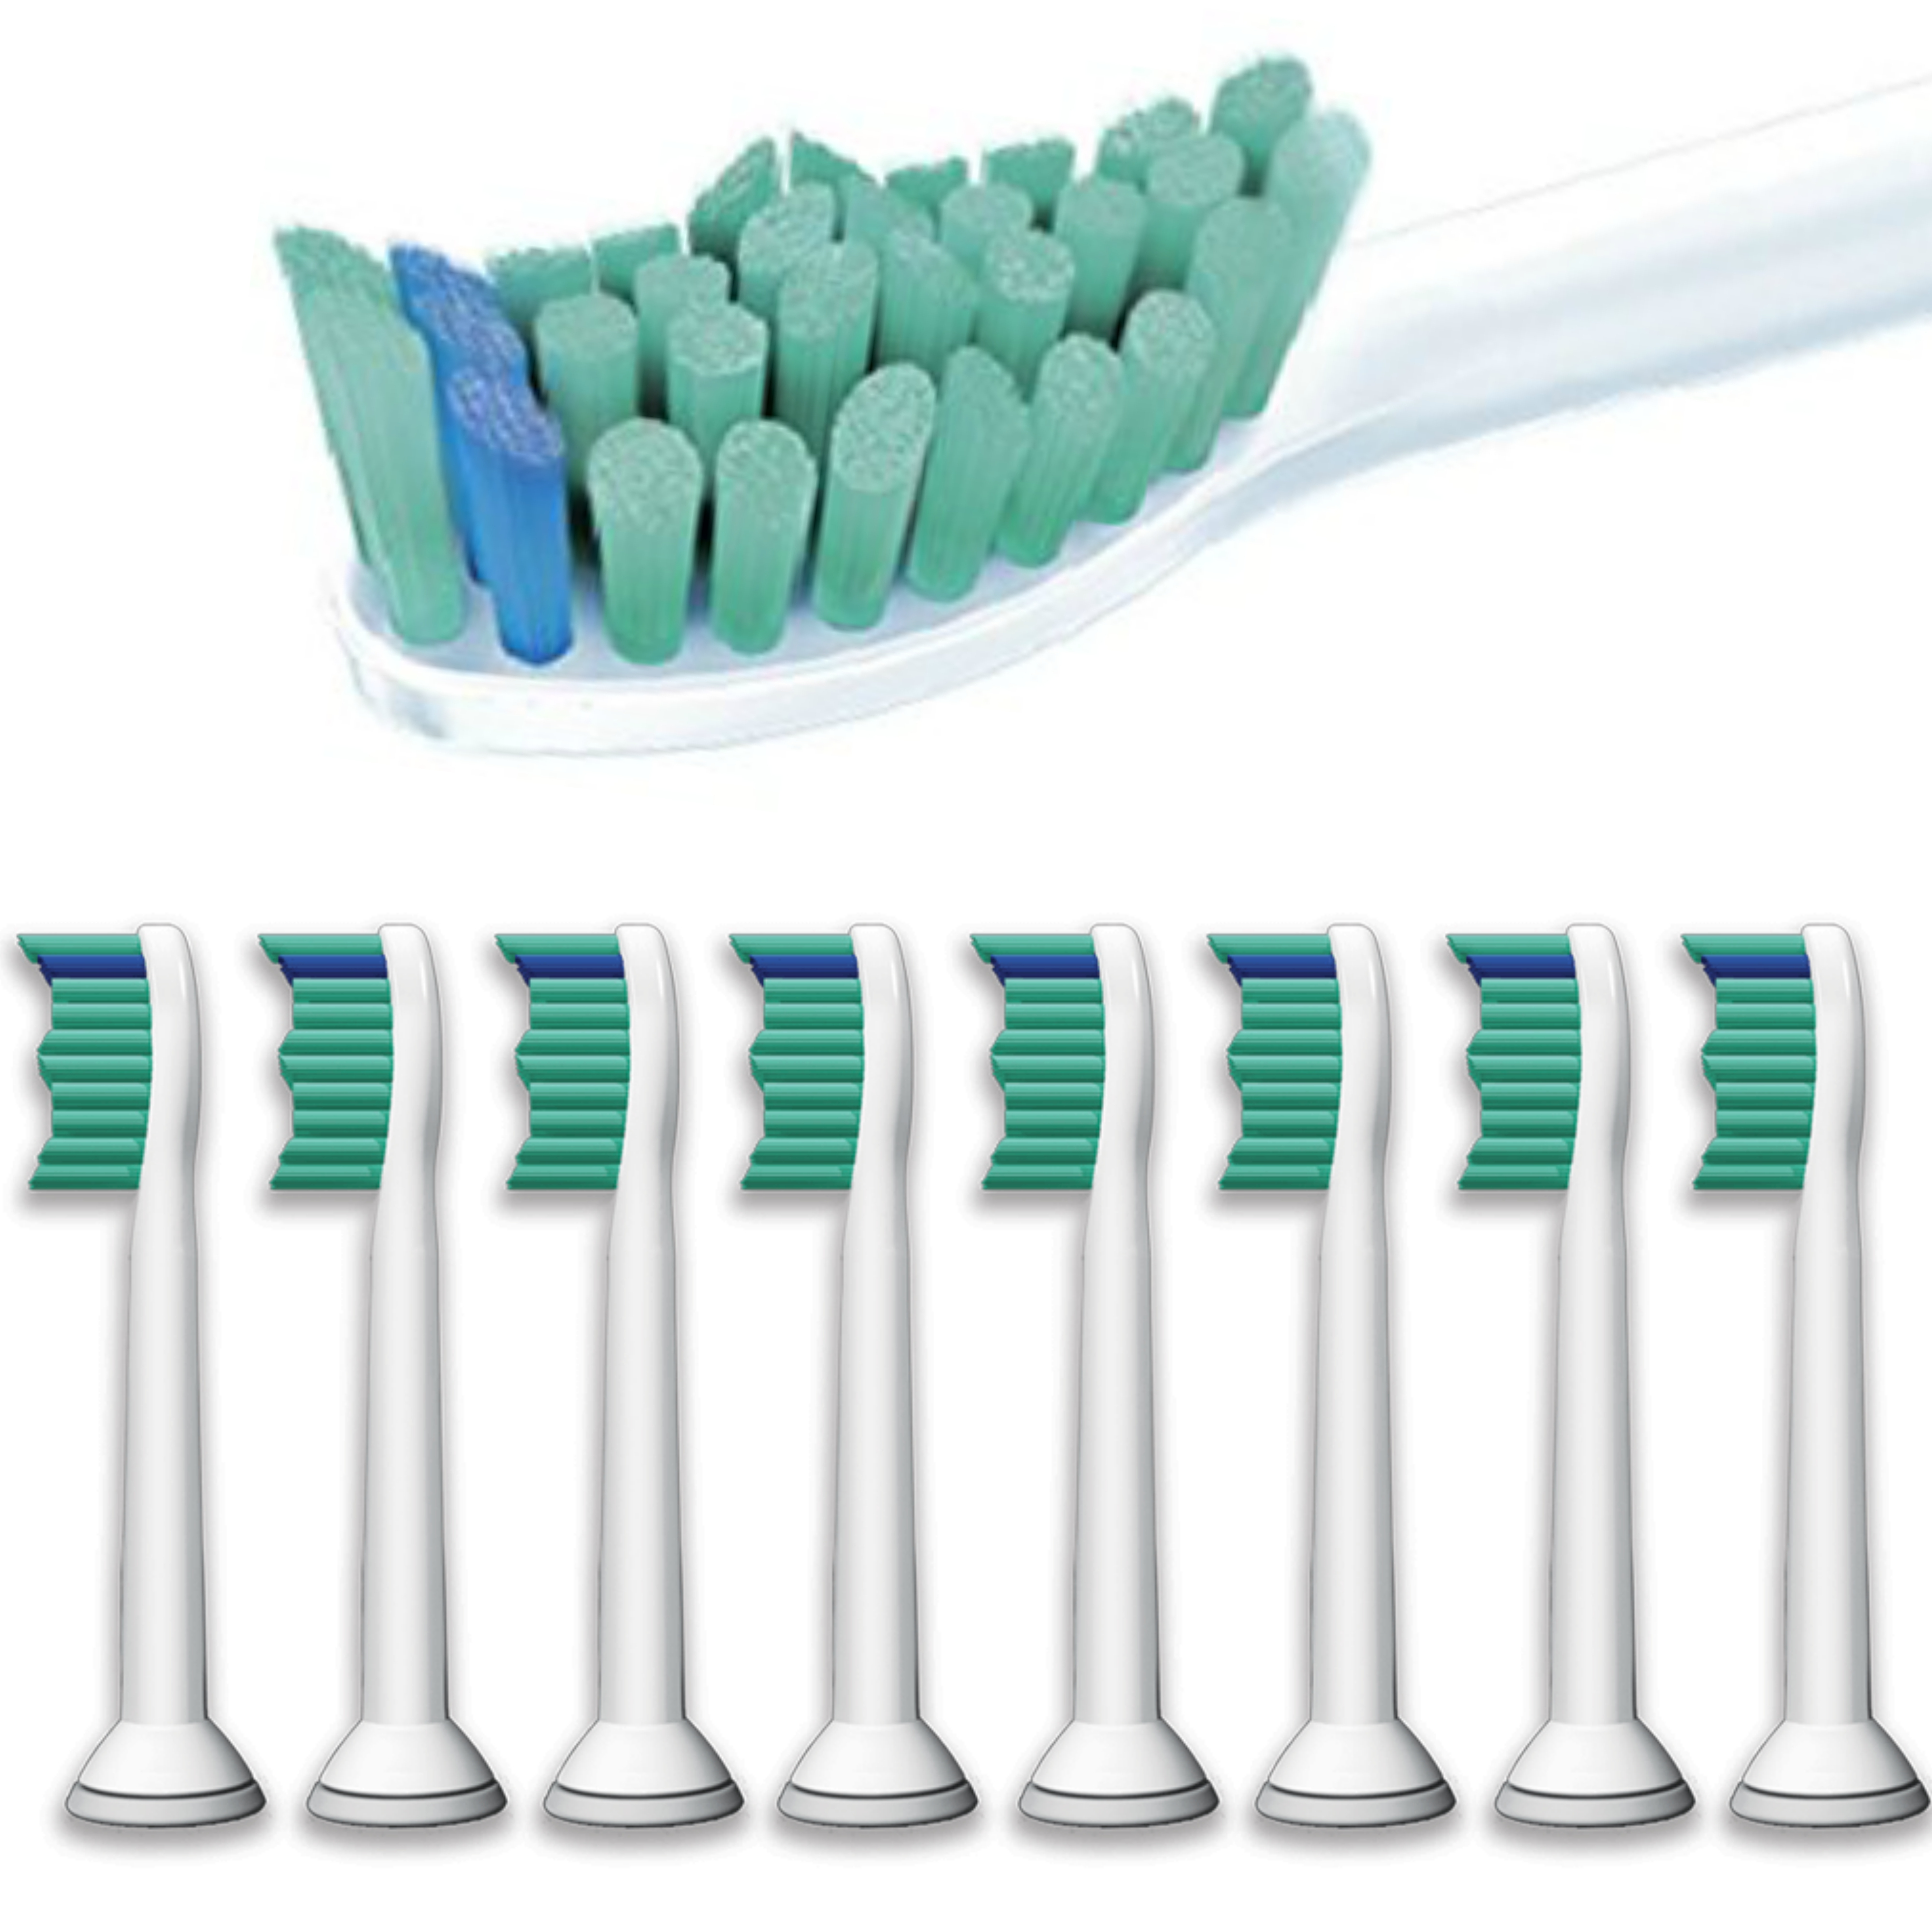 Philips Sonicare ProResults Sonic Toothbrush Heads (Pack of 8) | Replacement Heads